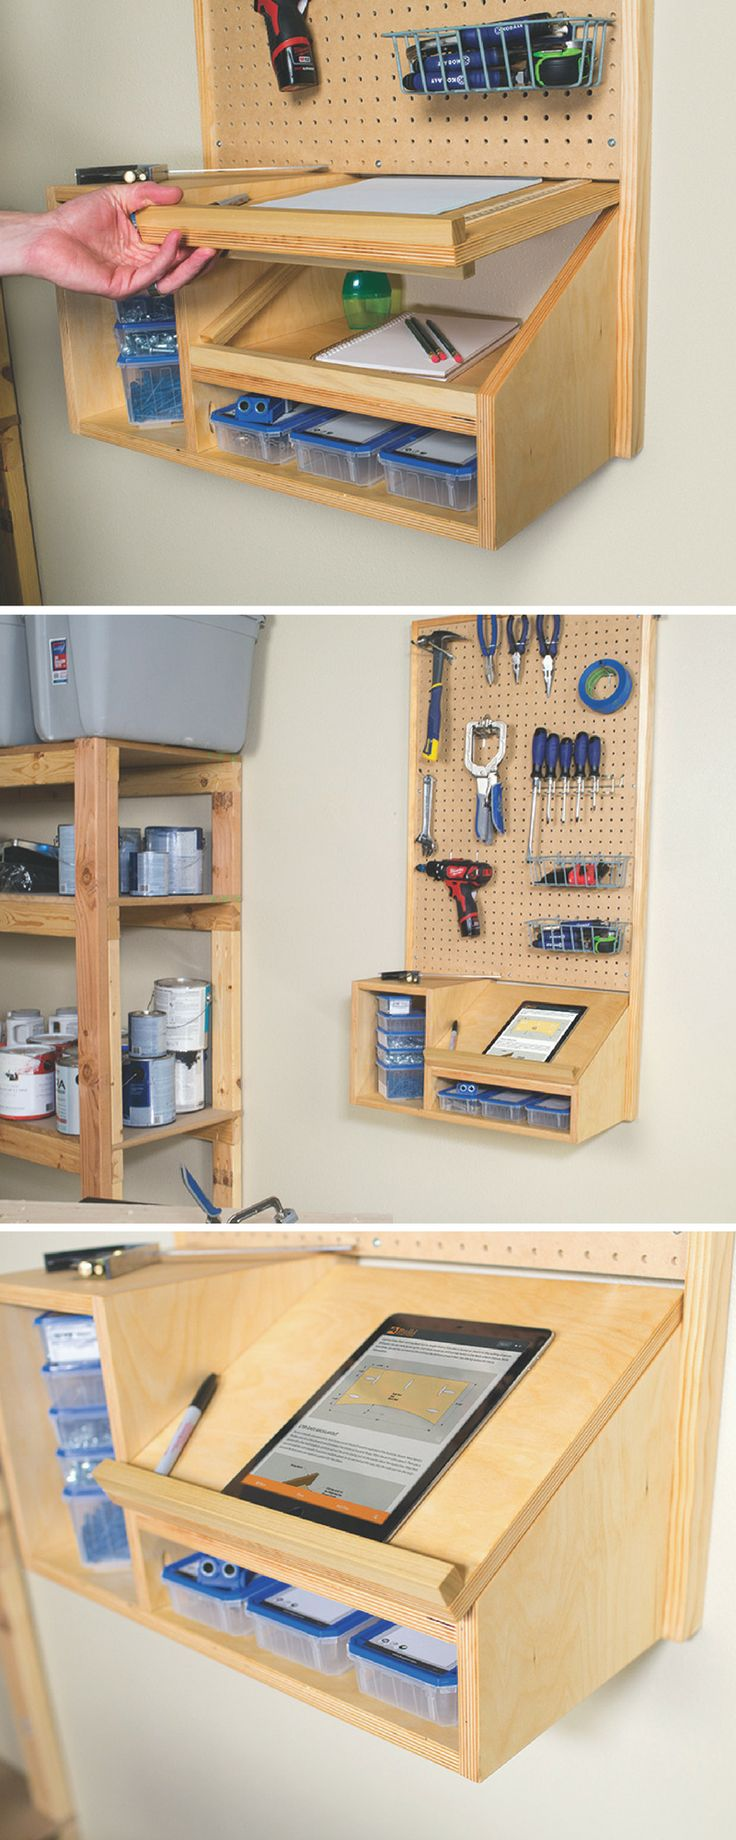 bo garage need a space for tools ideas - 17 Best ideas about Garage Workshop on Pinterest